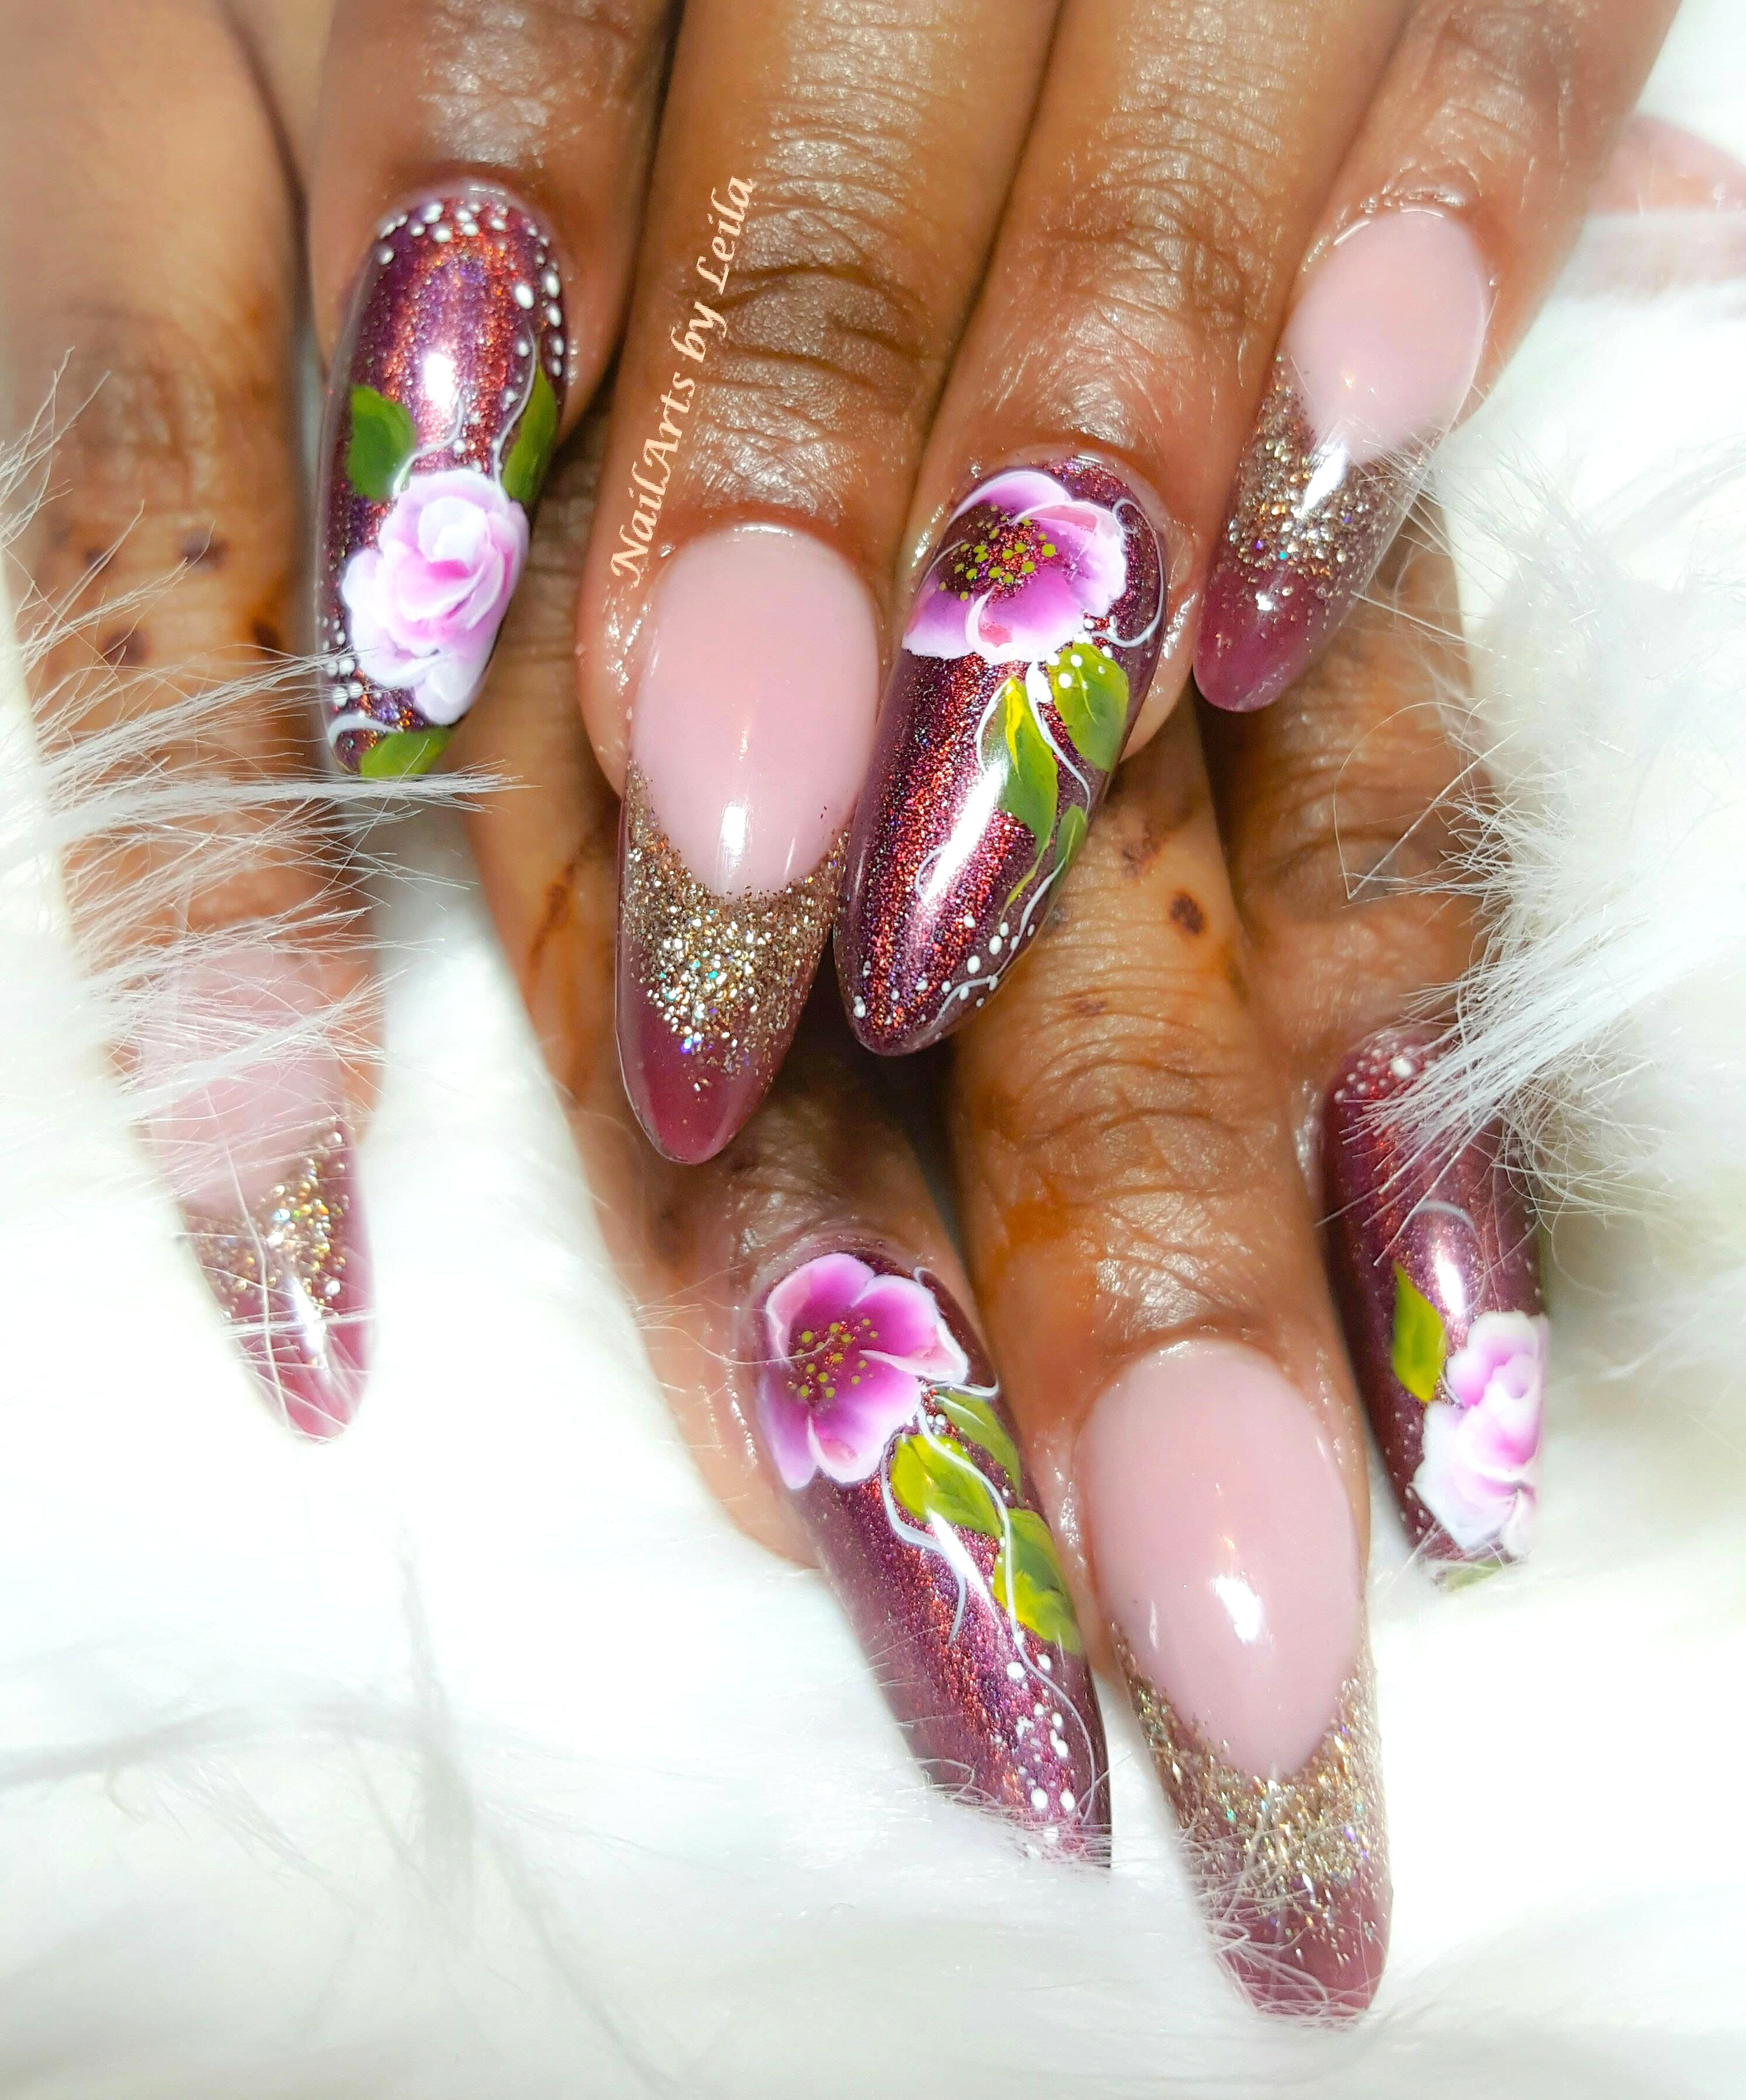 Colored acrylic fullset w/ art $60 European nail shapes and designs ...